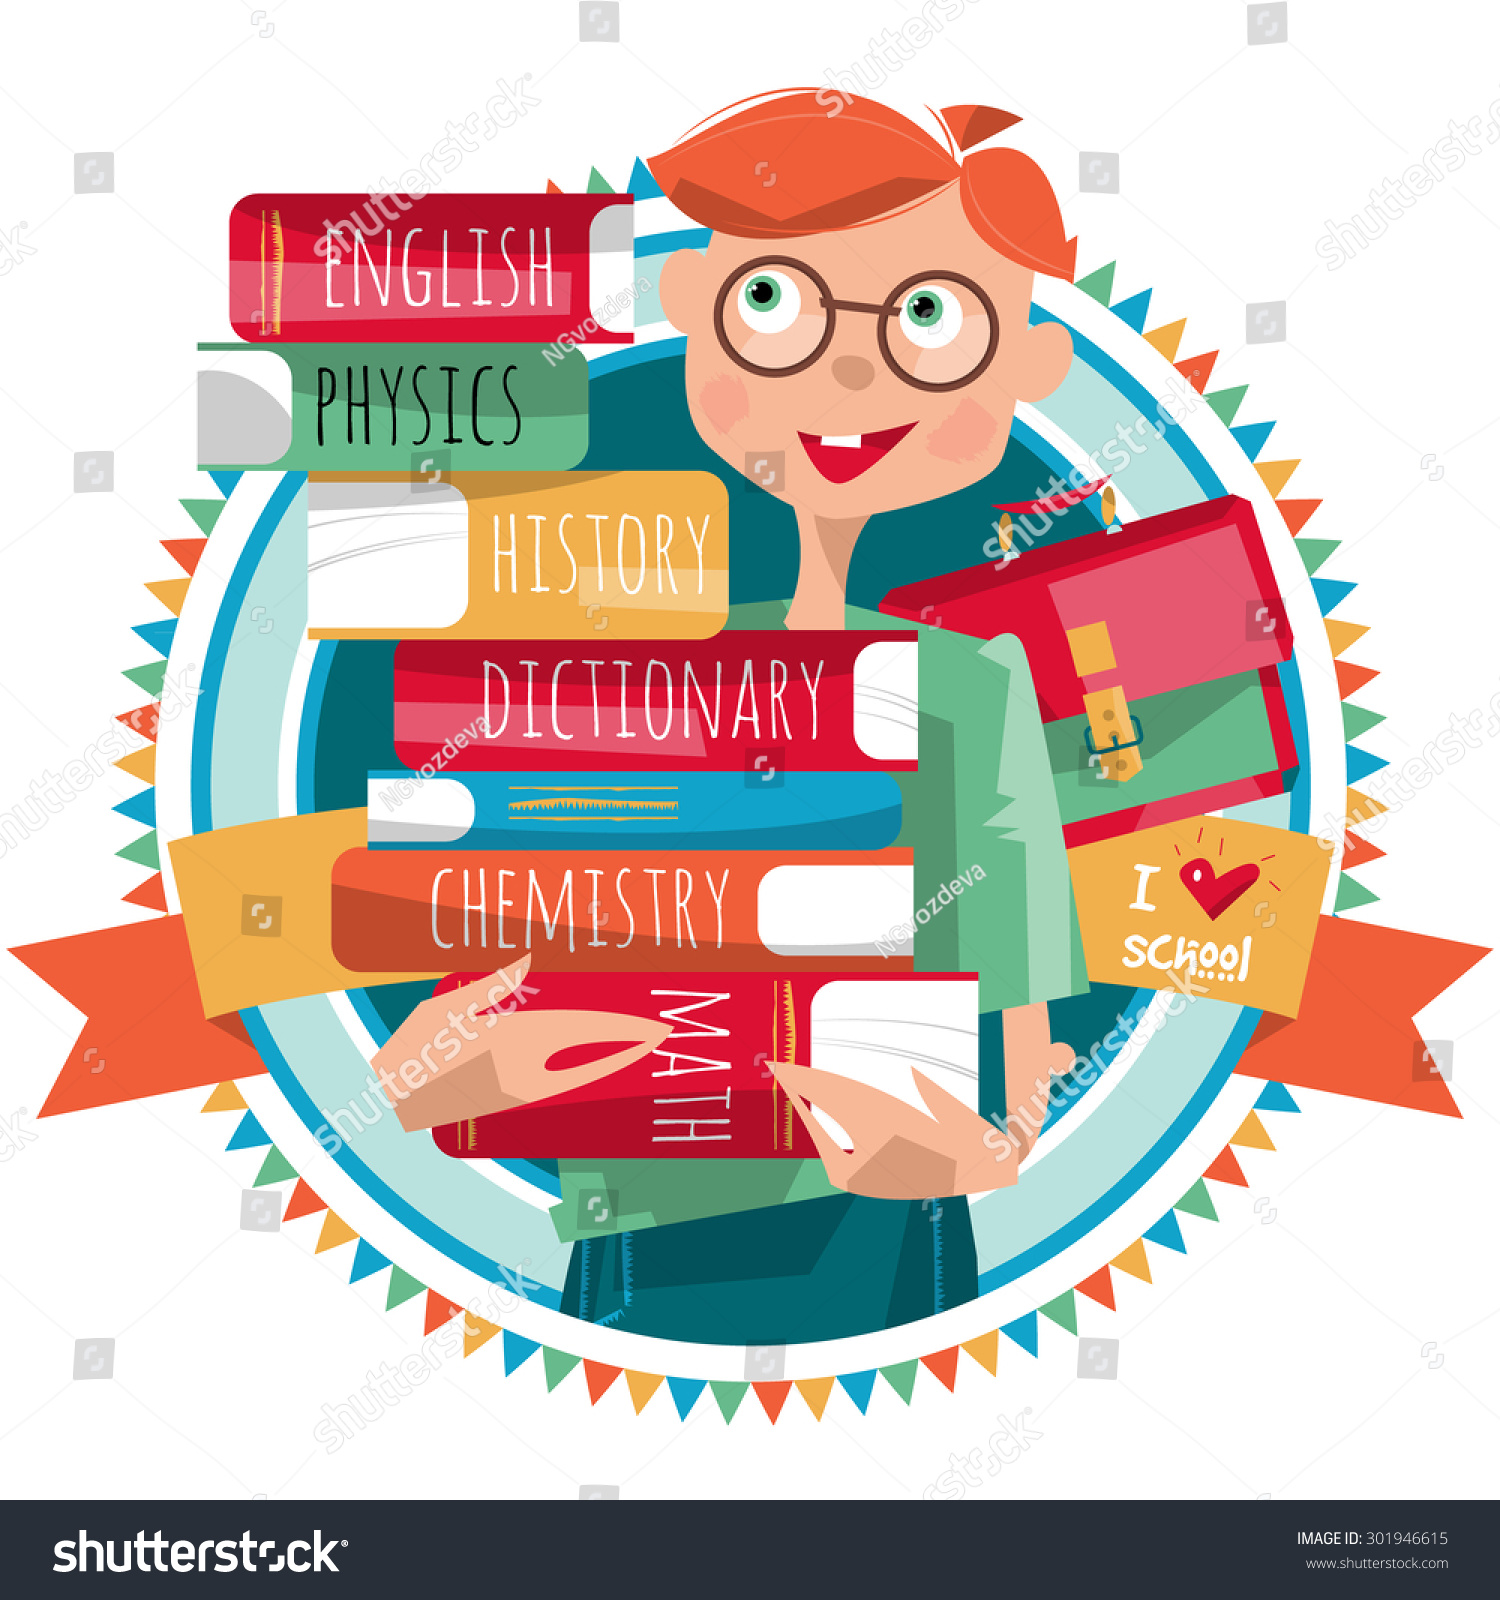 i love school I love school has 173 ratings and 49 reviews kiah said: i thougt this book was such a good example of all the fun things that can happen at school thi.